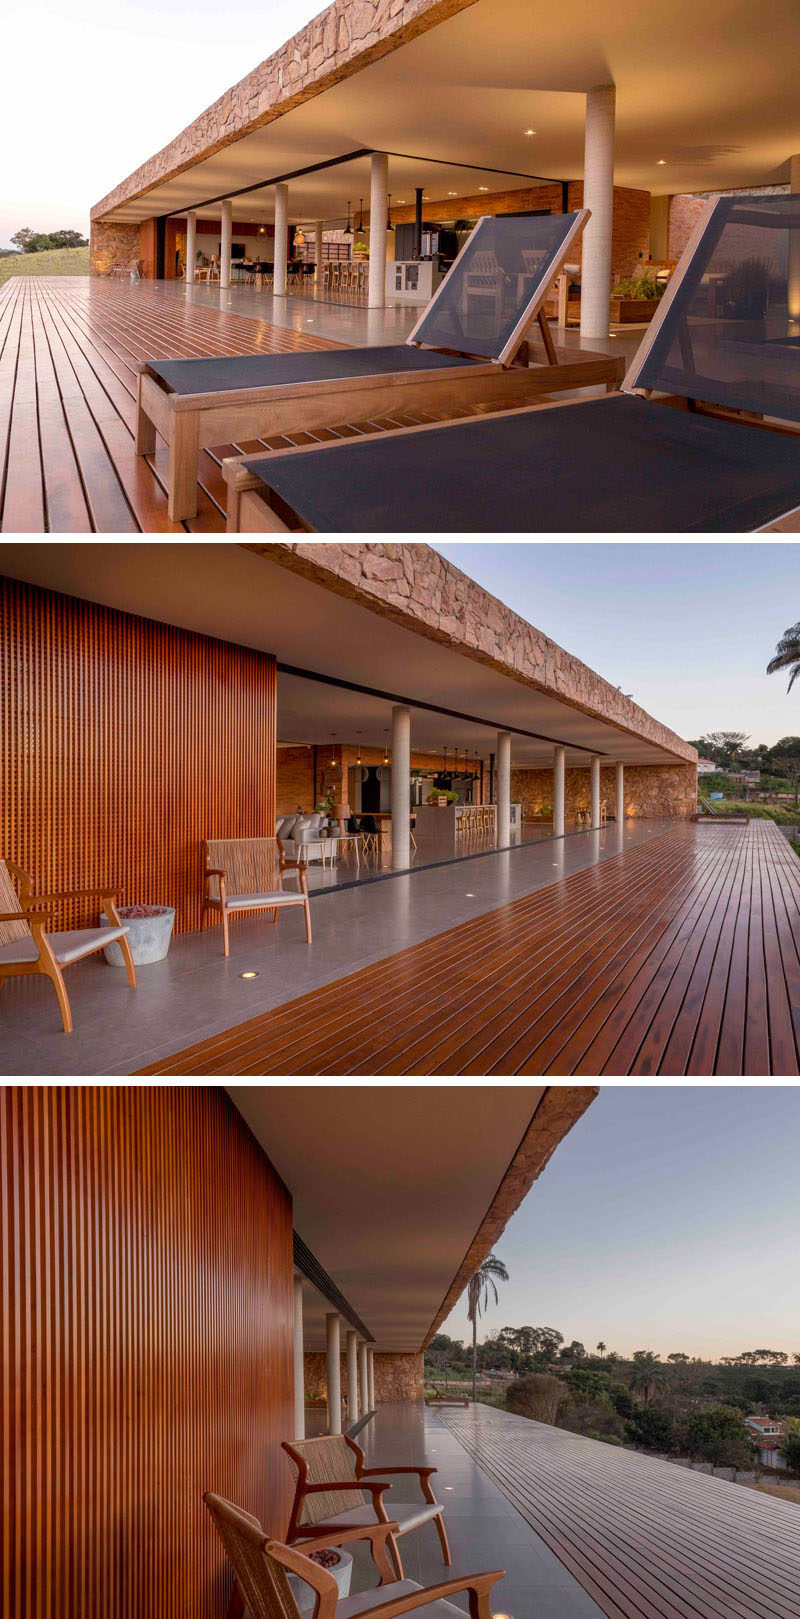 Accessible from all of the social areas of this modern house is a large wood deck that looks out over the valley. #Deck #ModernHouse